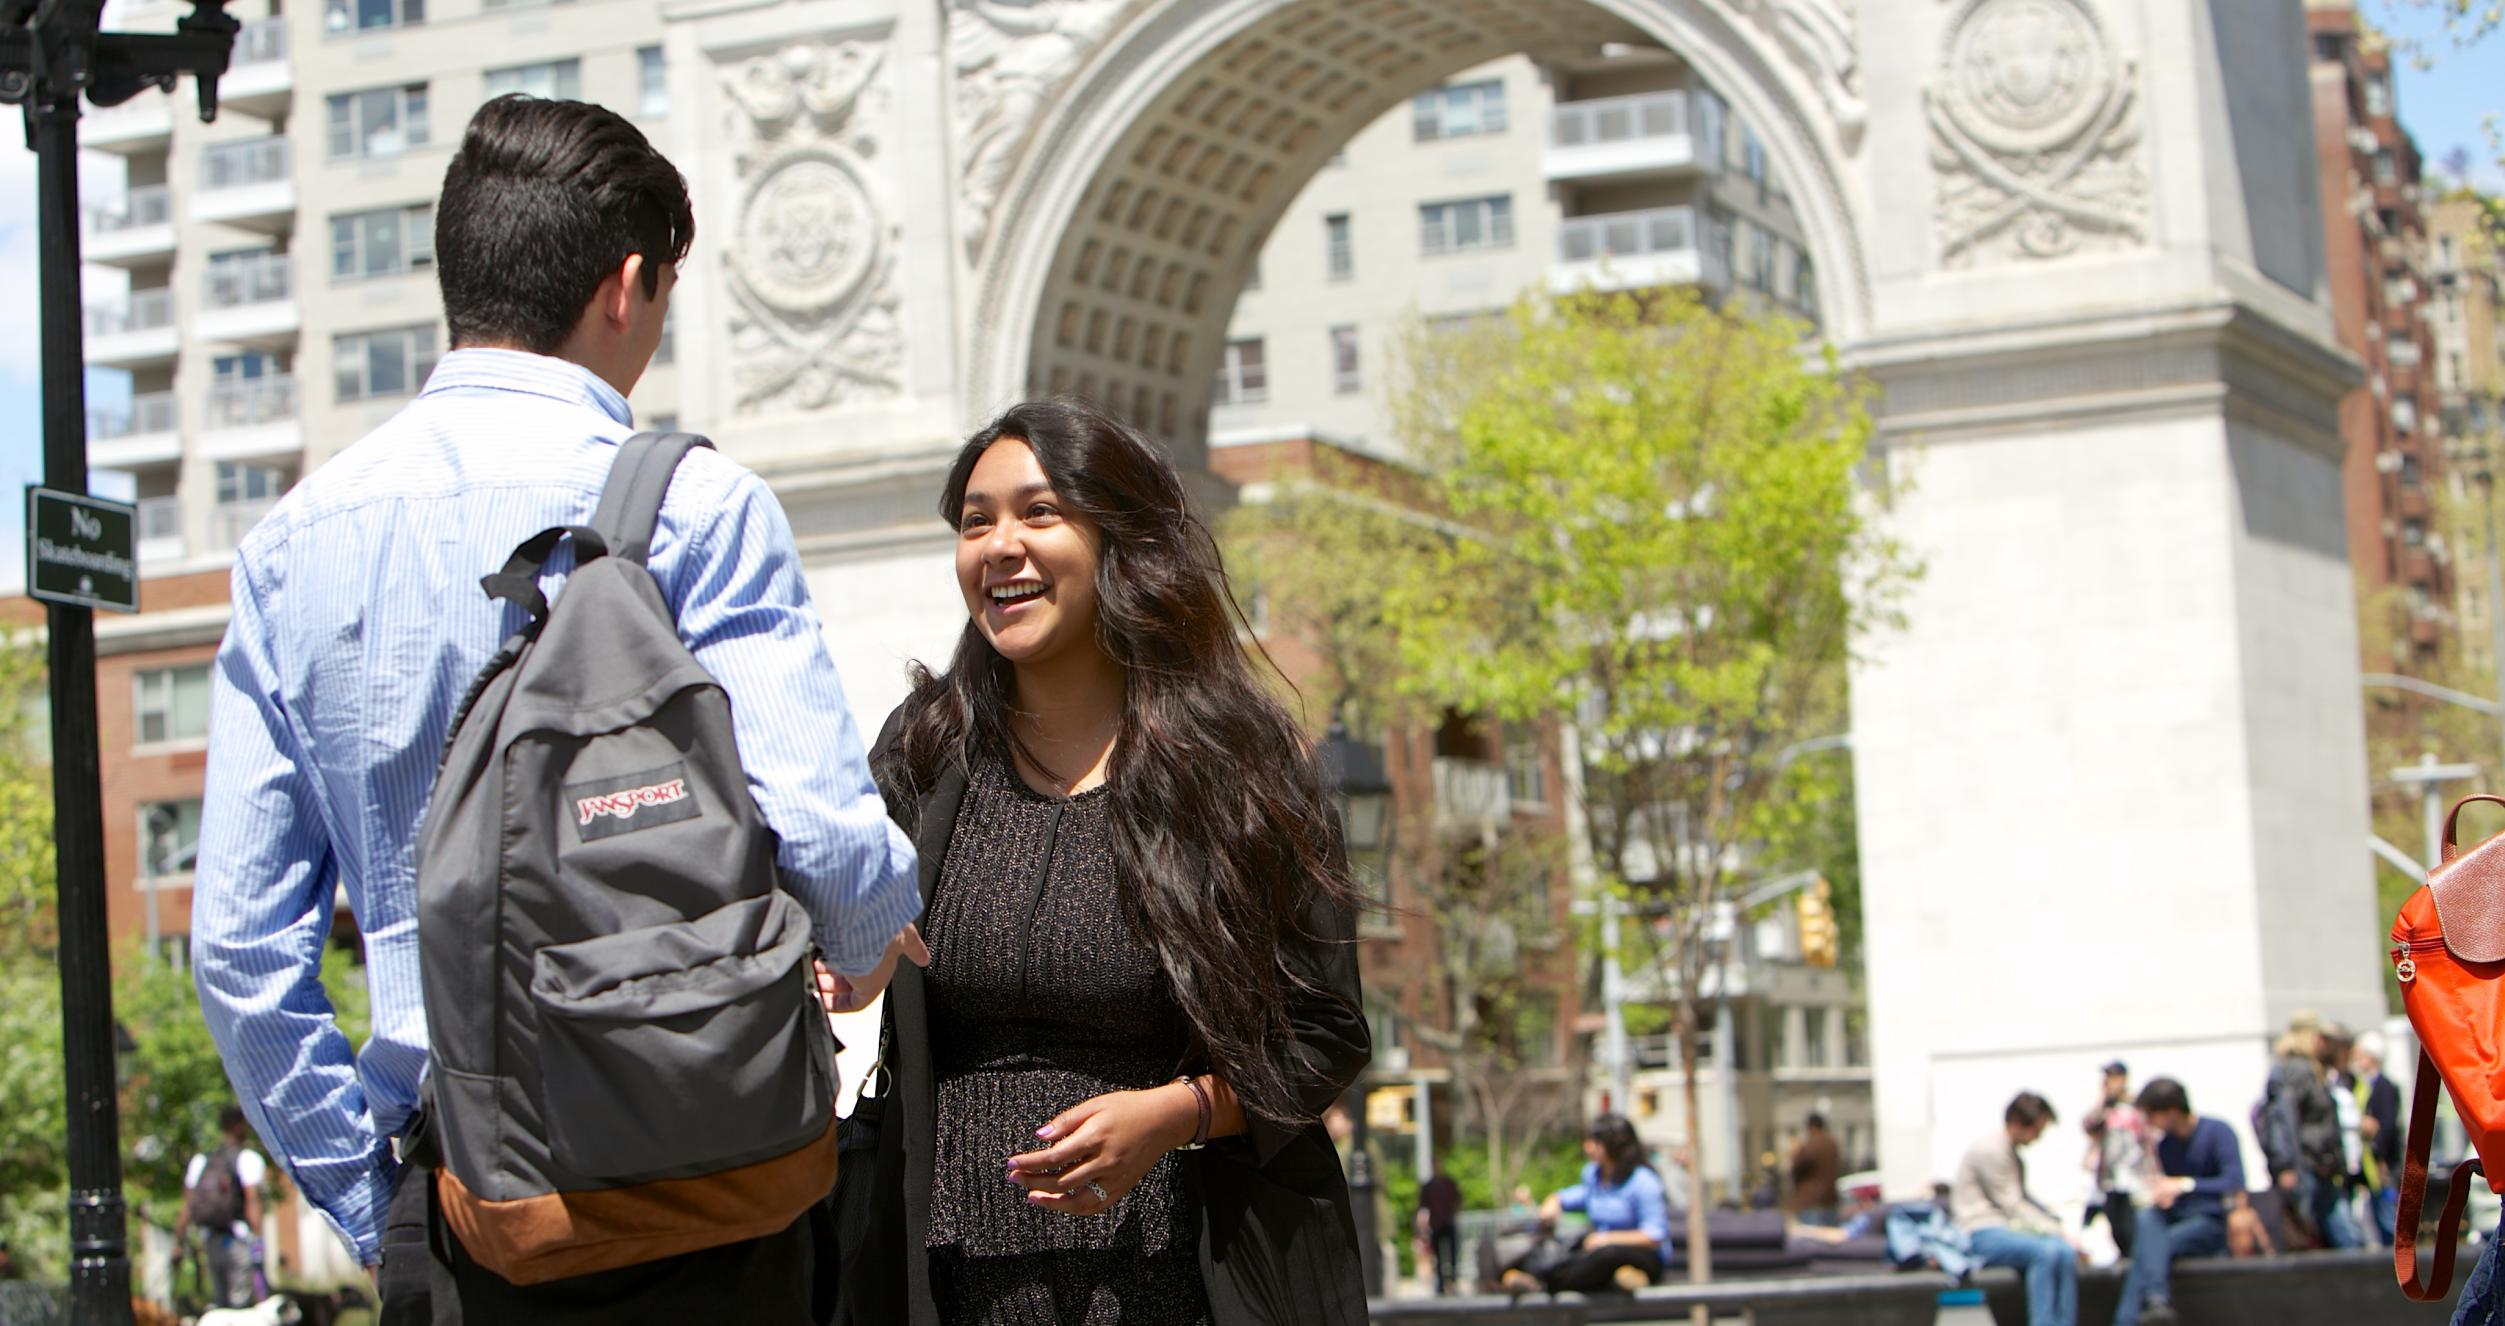 Students chat in front of the arch at Washington Square Park